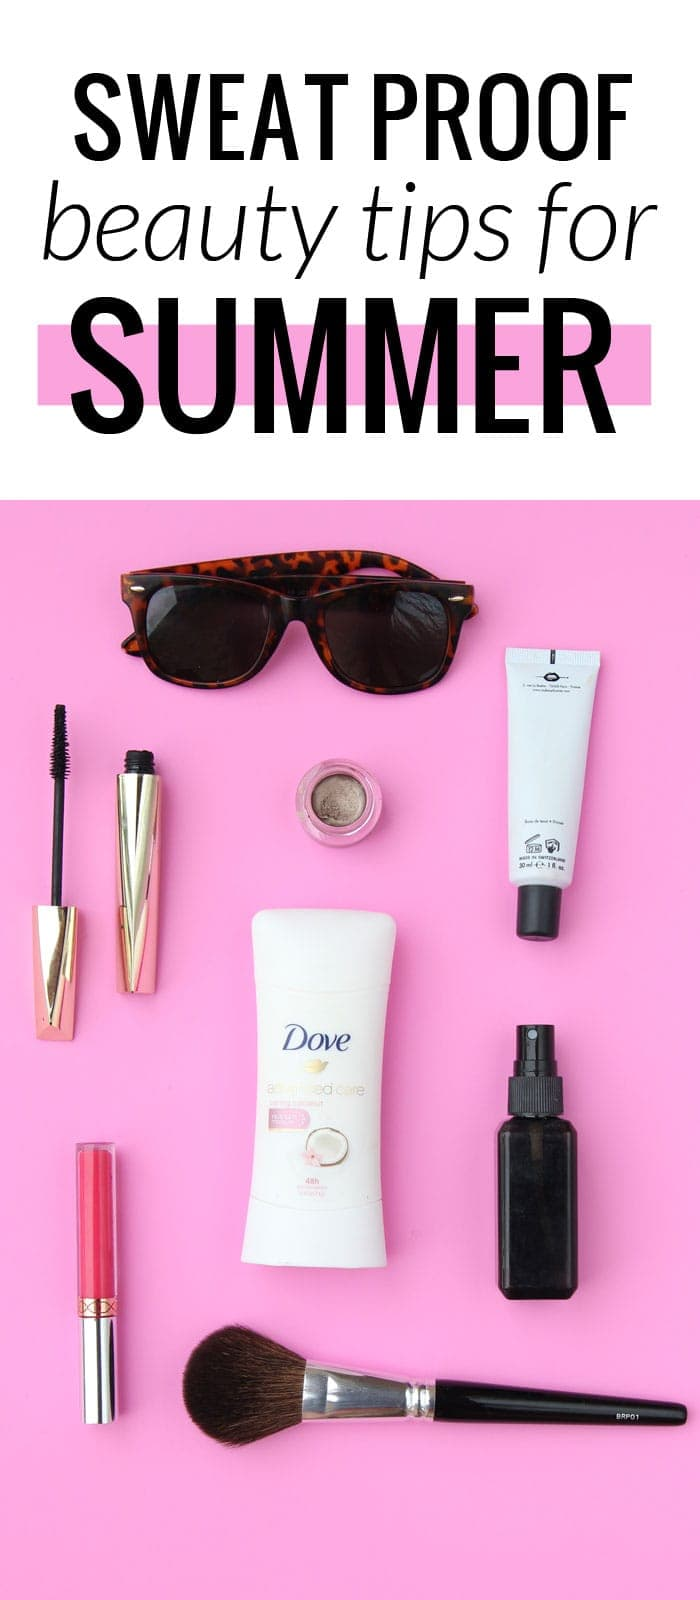 Sweat proof beauty tips for summer - keep dry, and help that makeup last longer!